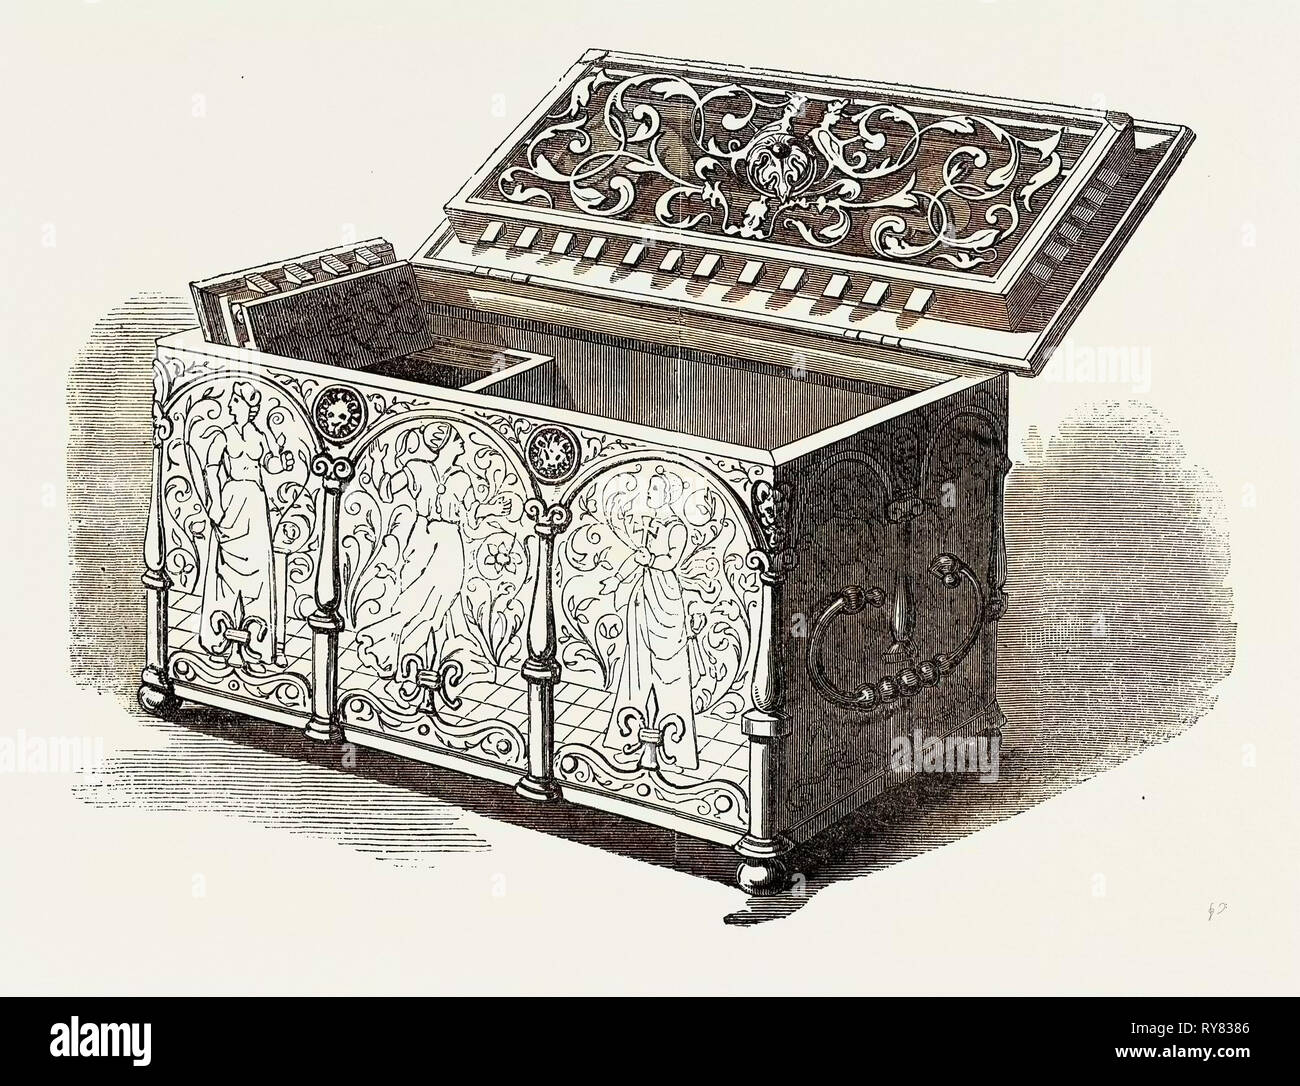 No. 165, Engraved Steel Casket, 16th Century, the Exhibition of Ancient and Mediaeval Art - Stock Image